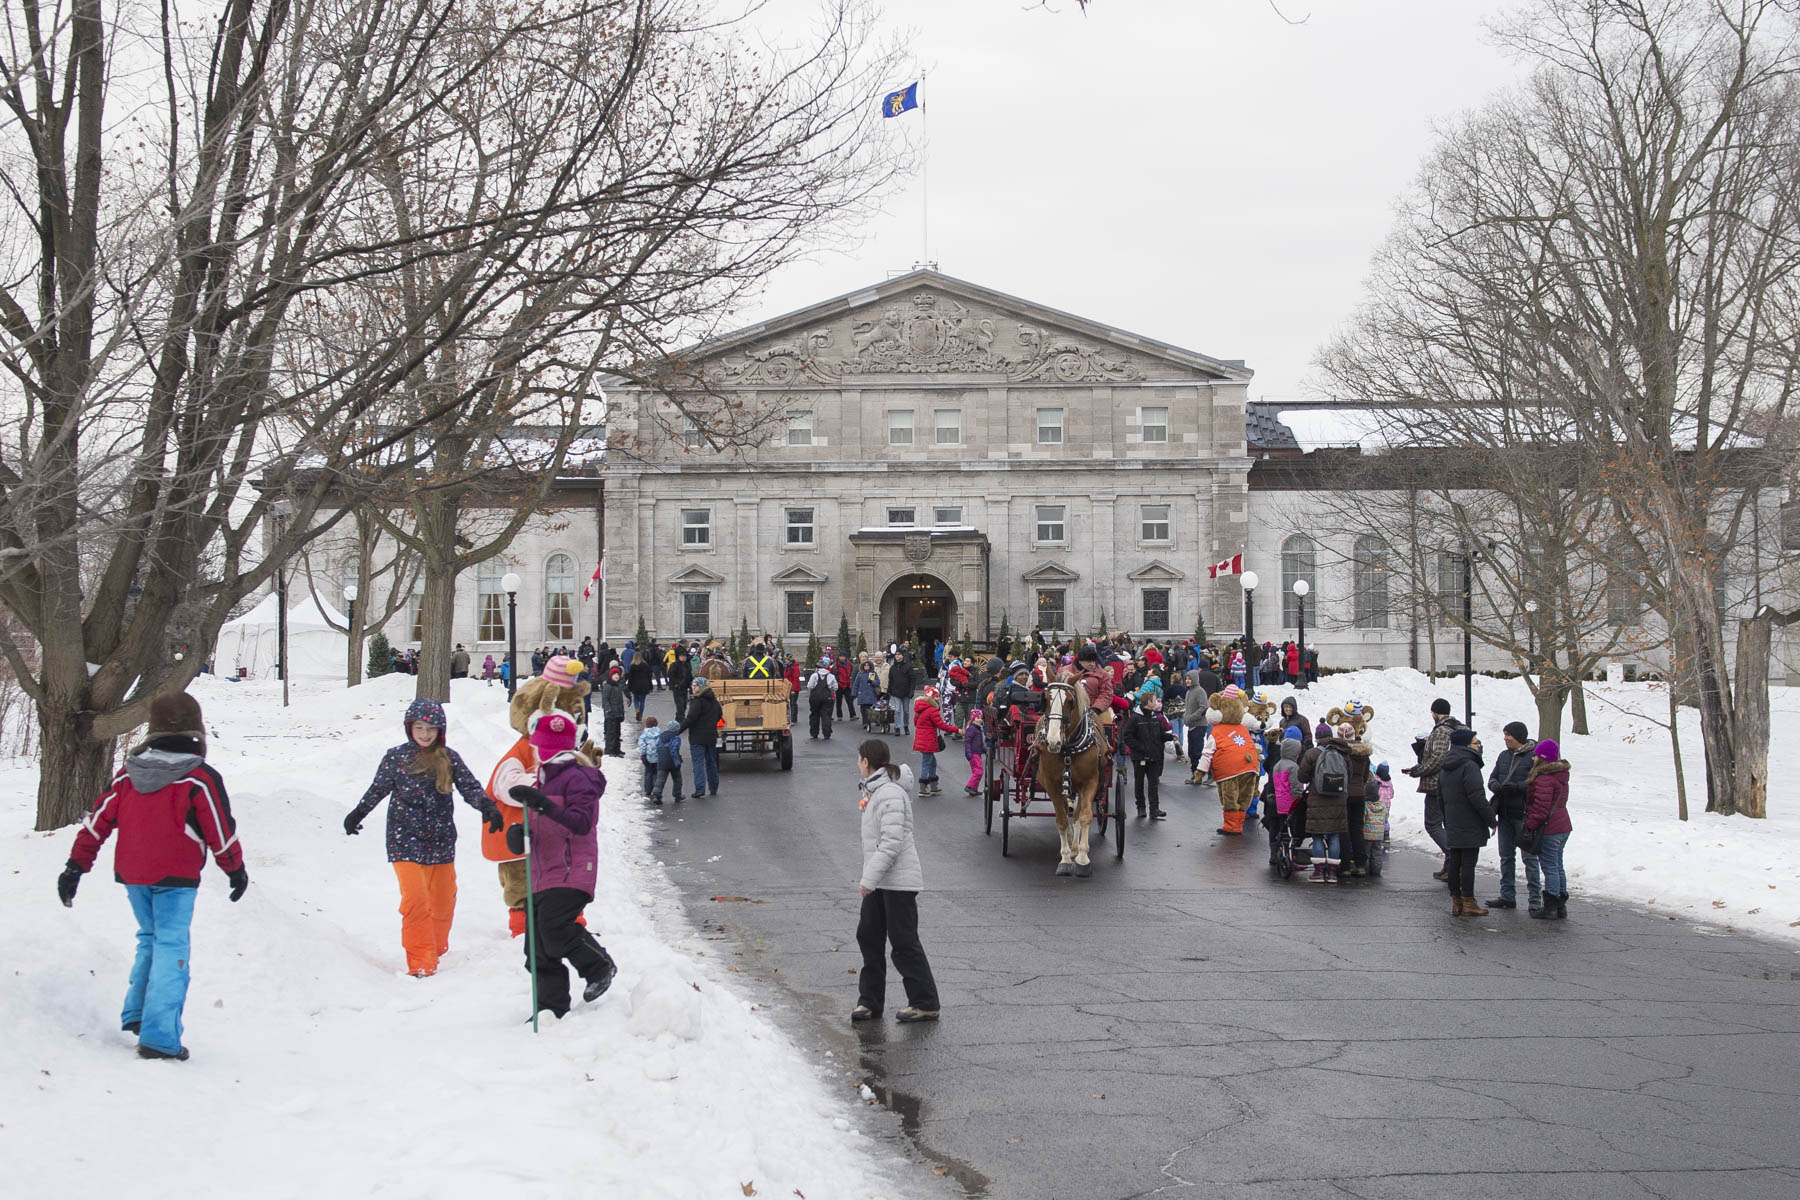 Thousands of people gathered at Rideau Hall for Winter Celebration on January 27, 2018.